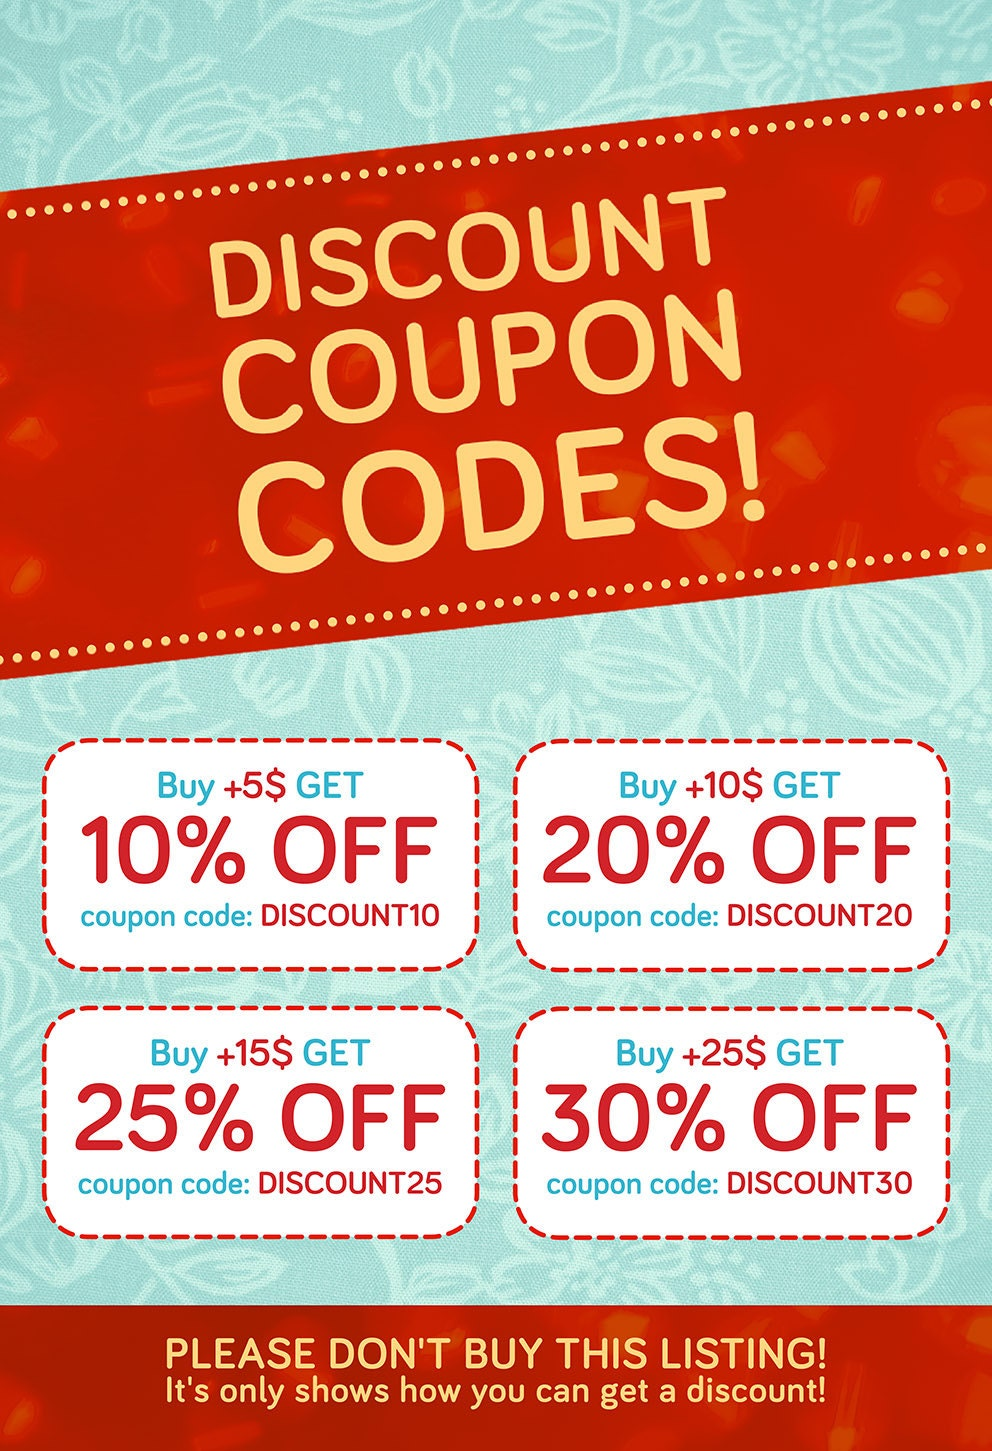 Discount Coupon Codes Stickers Coupon Codes Stickers Save